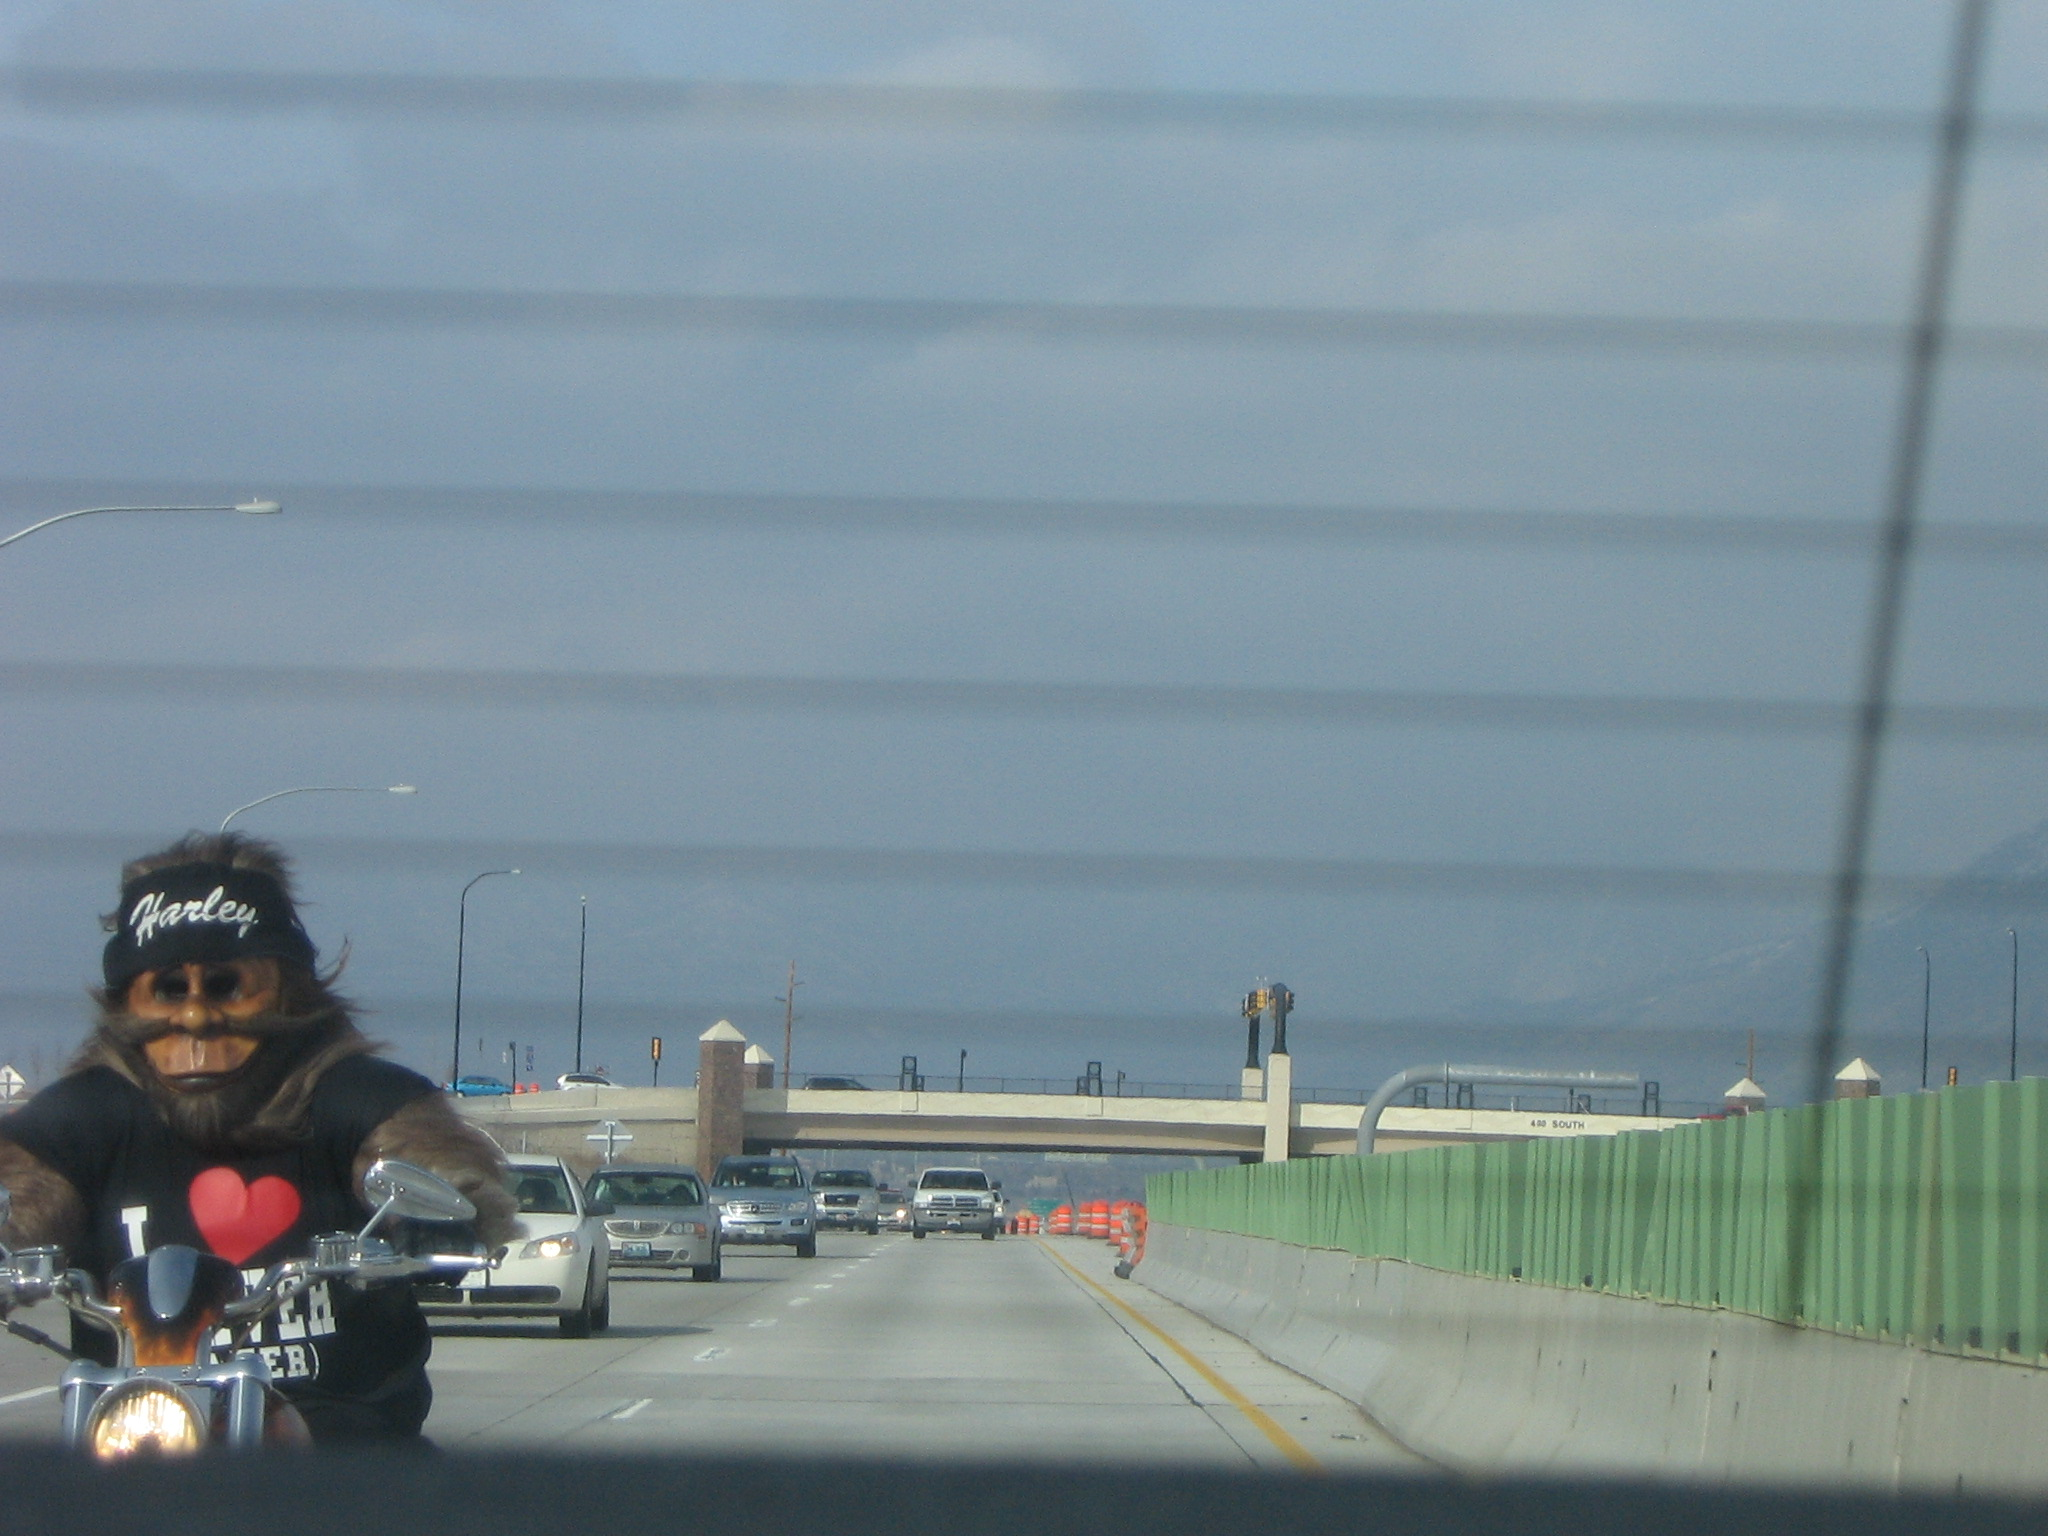 Another angle of chewbacca riding a motorcycle.